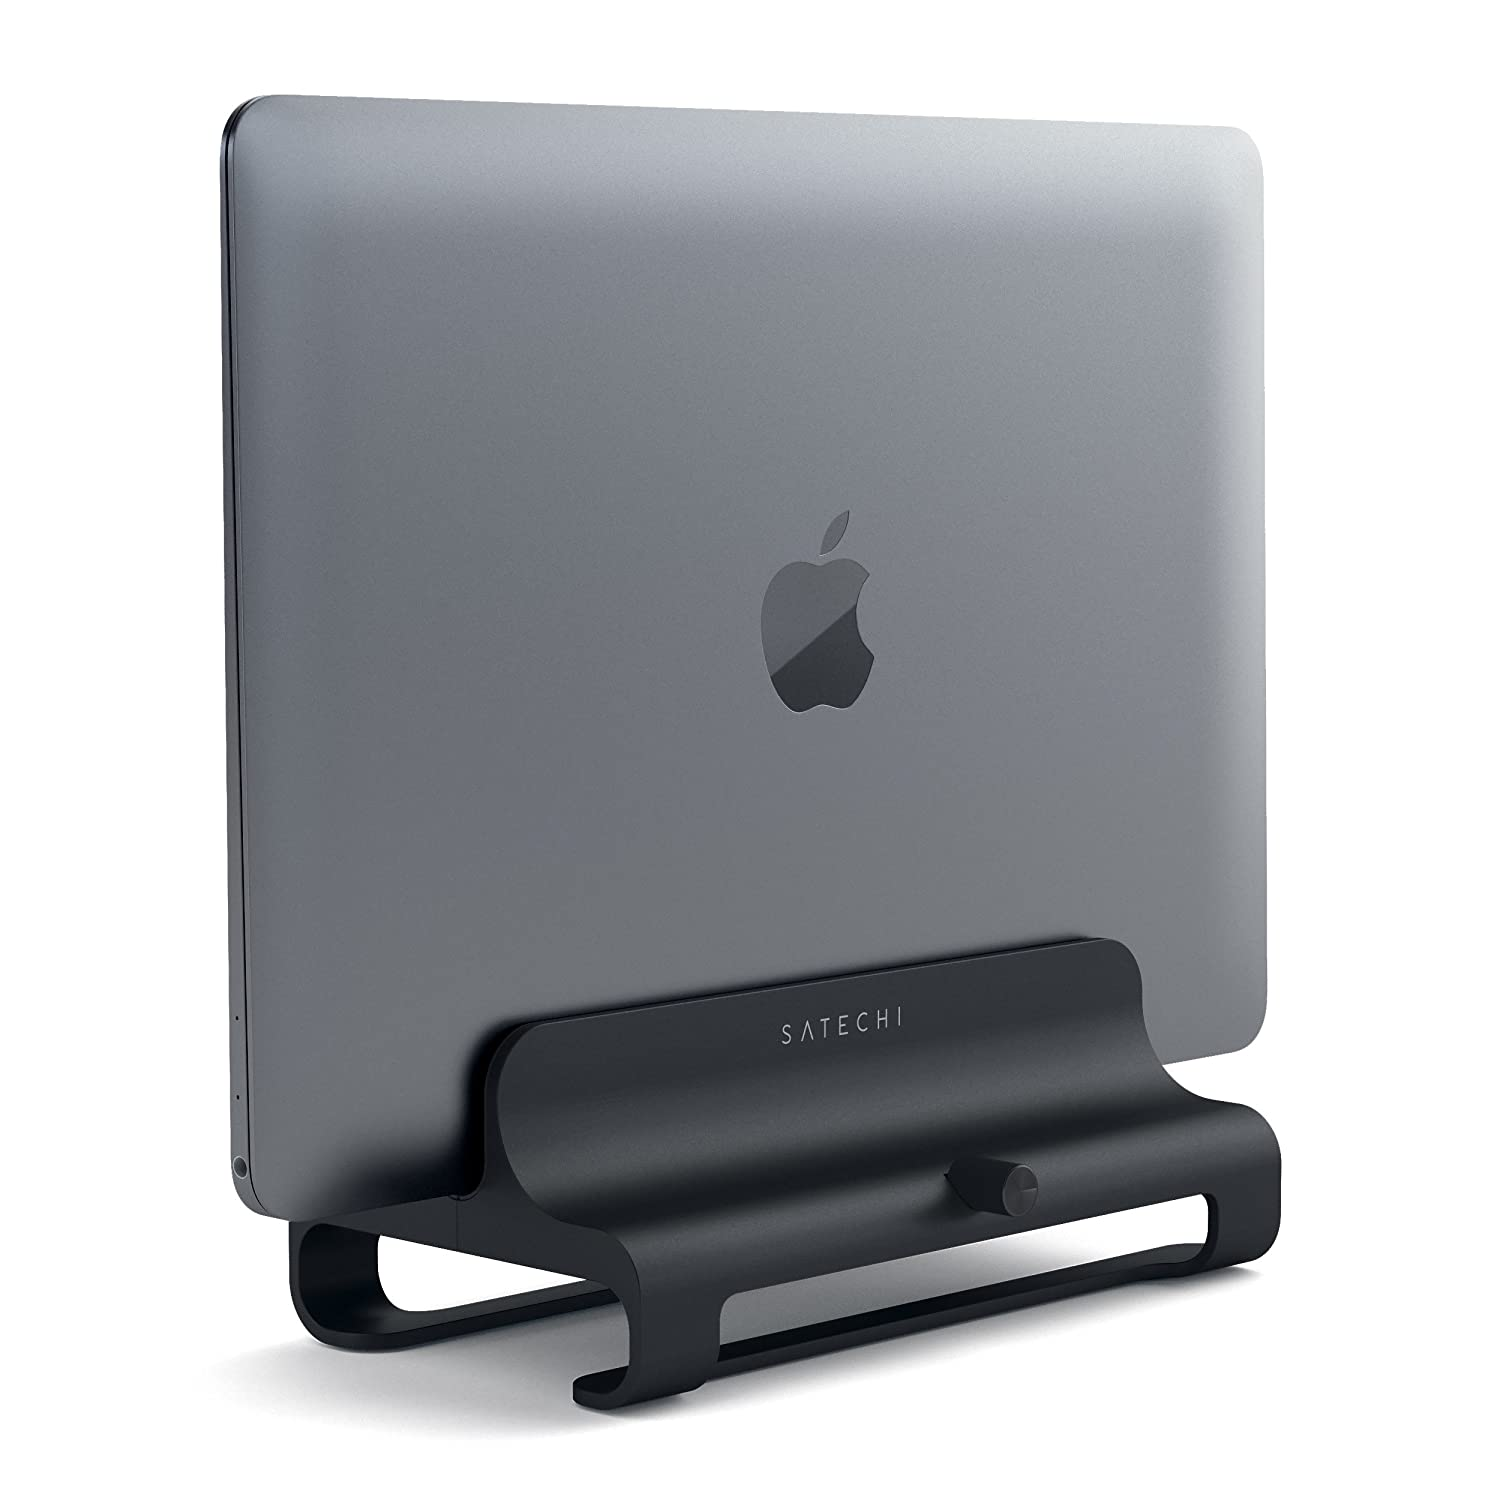 Dell XPS Samsung Notebook and More Compatible with MacBook Lenovo Yoga MacBook Pro Jet Black Asus Zenbook Satechi Universal Vertical Aluminum Laptop Stand